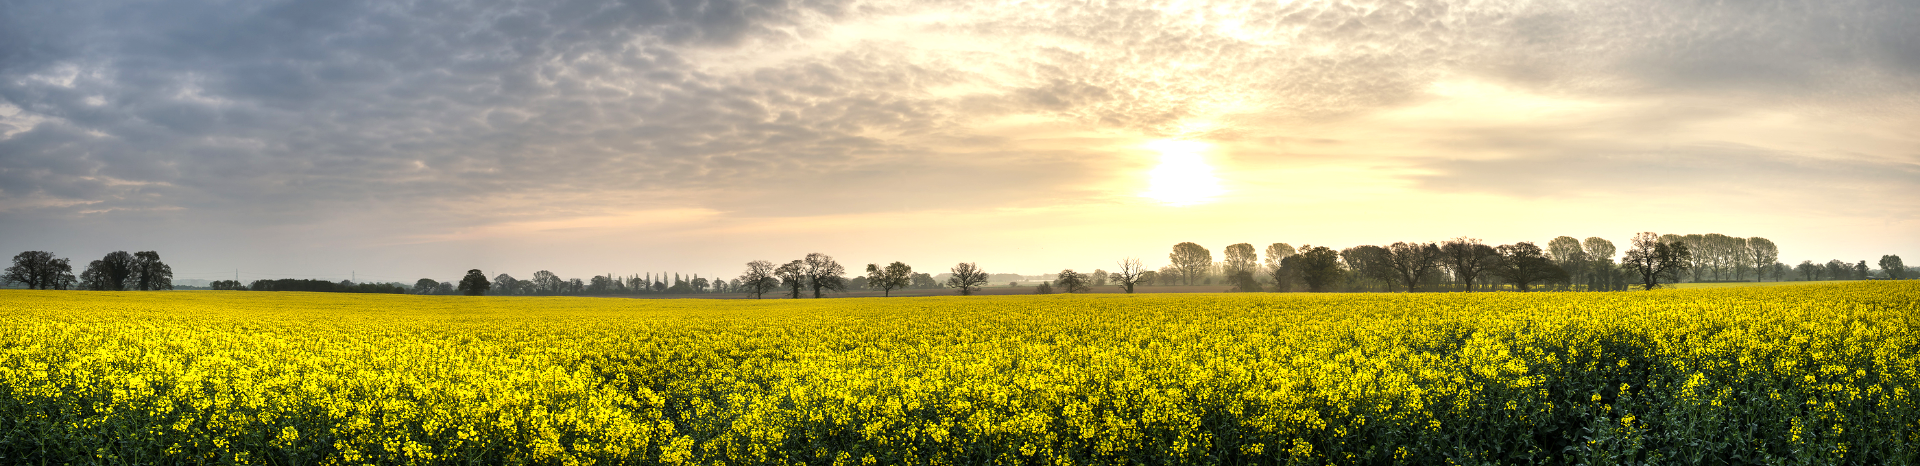 Panorama Landscape Rapeseed Canola Field In Diffuse Hazy Morning Sun_edited_edit